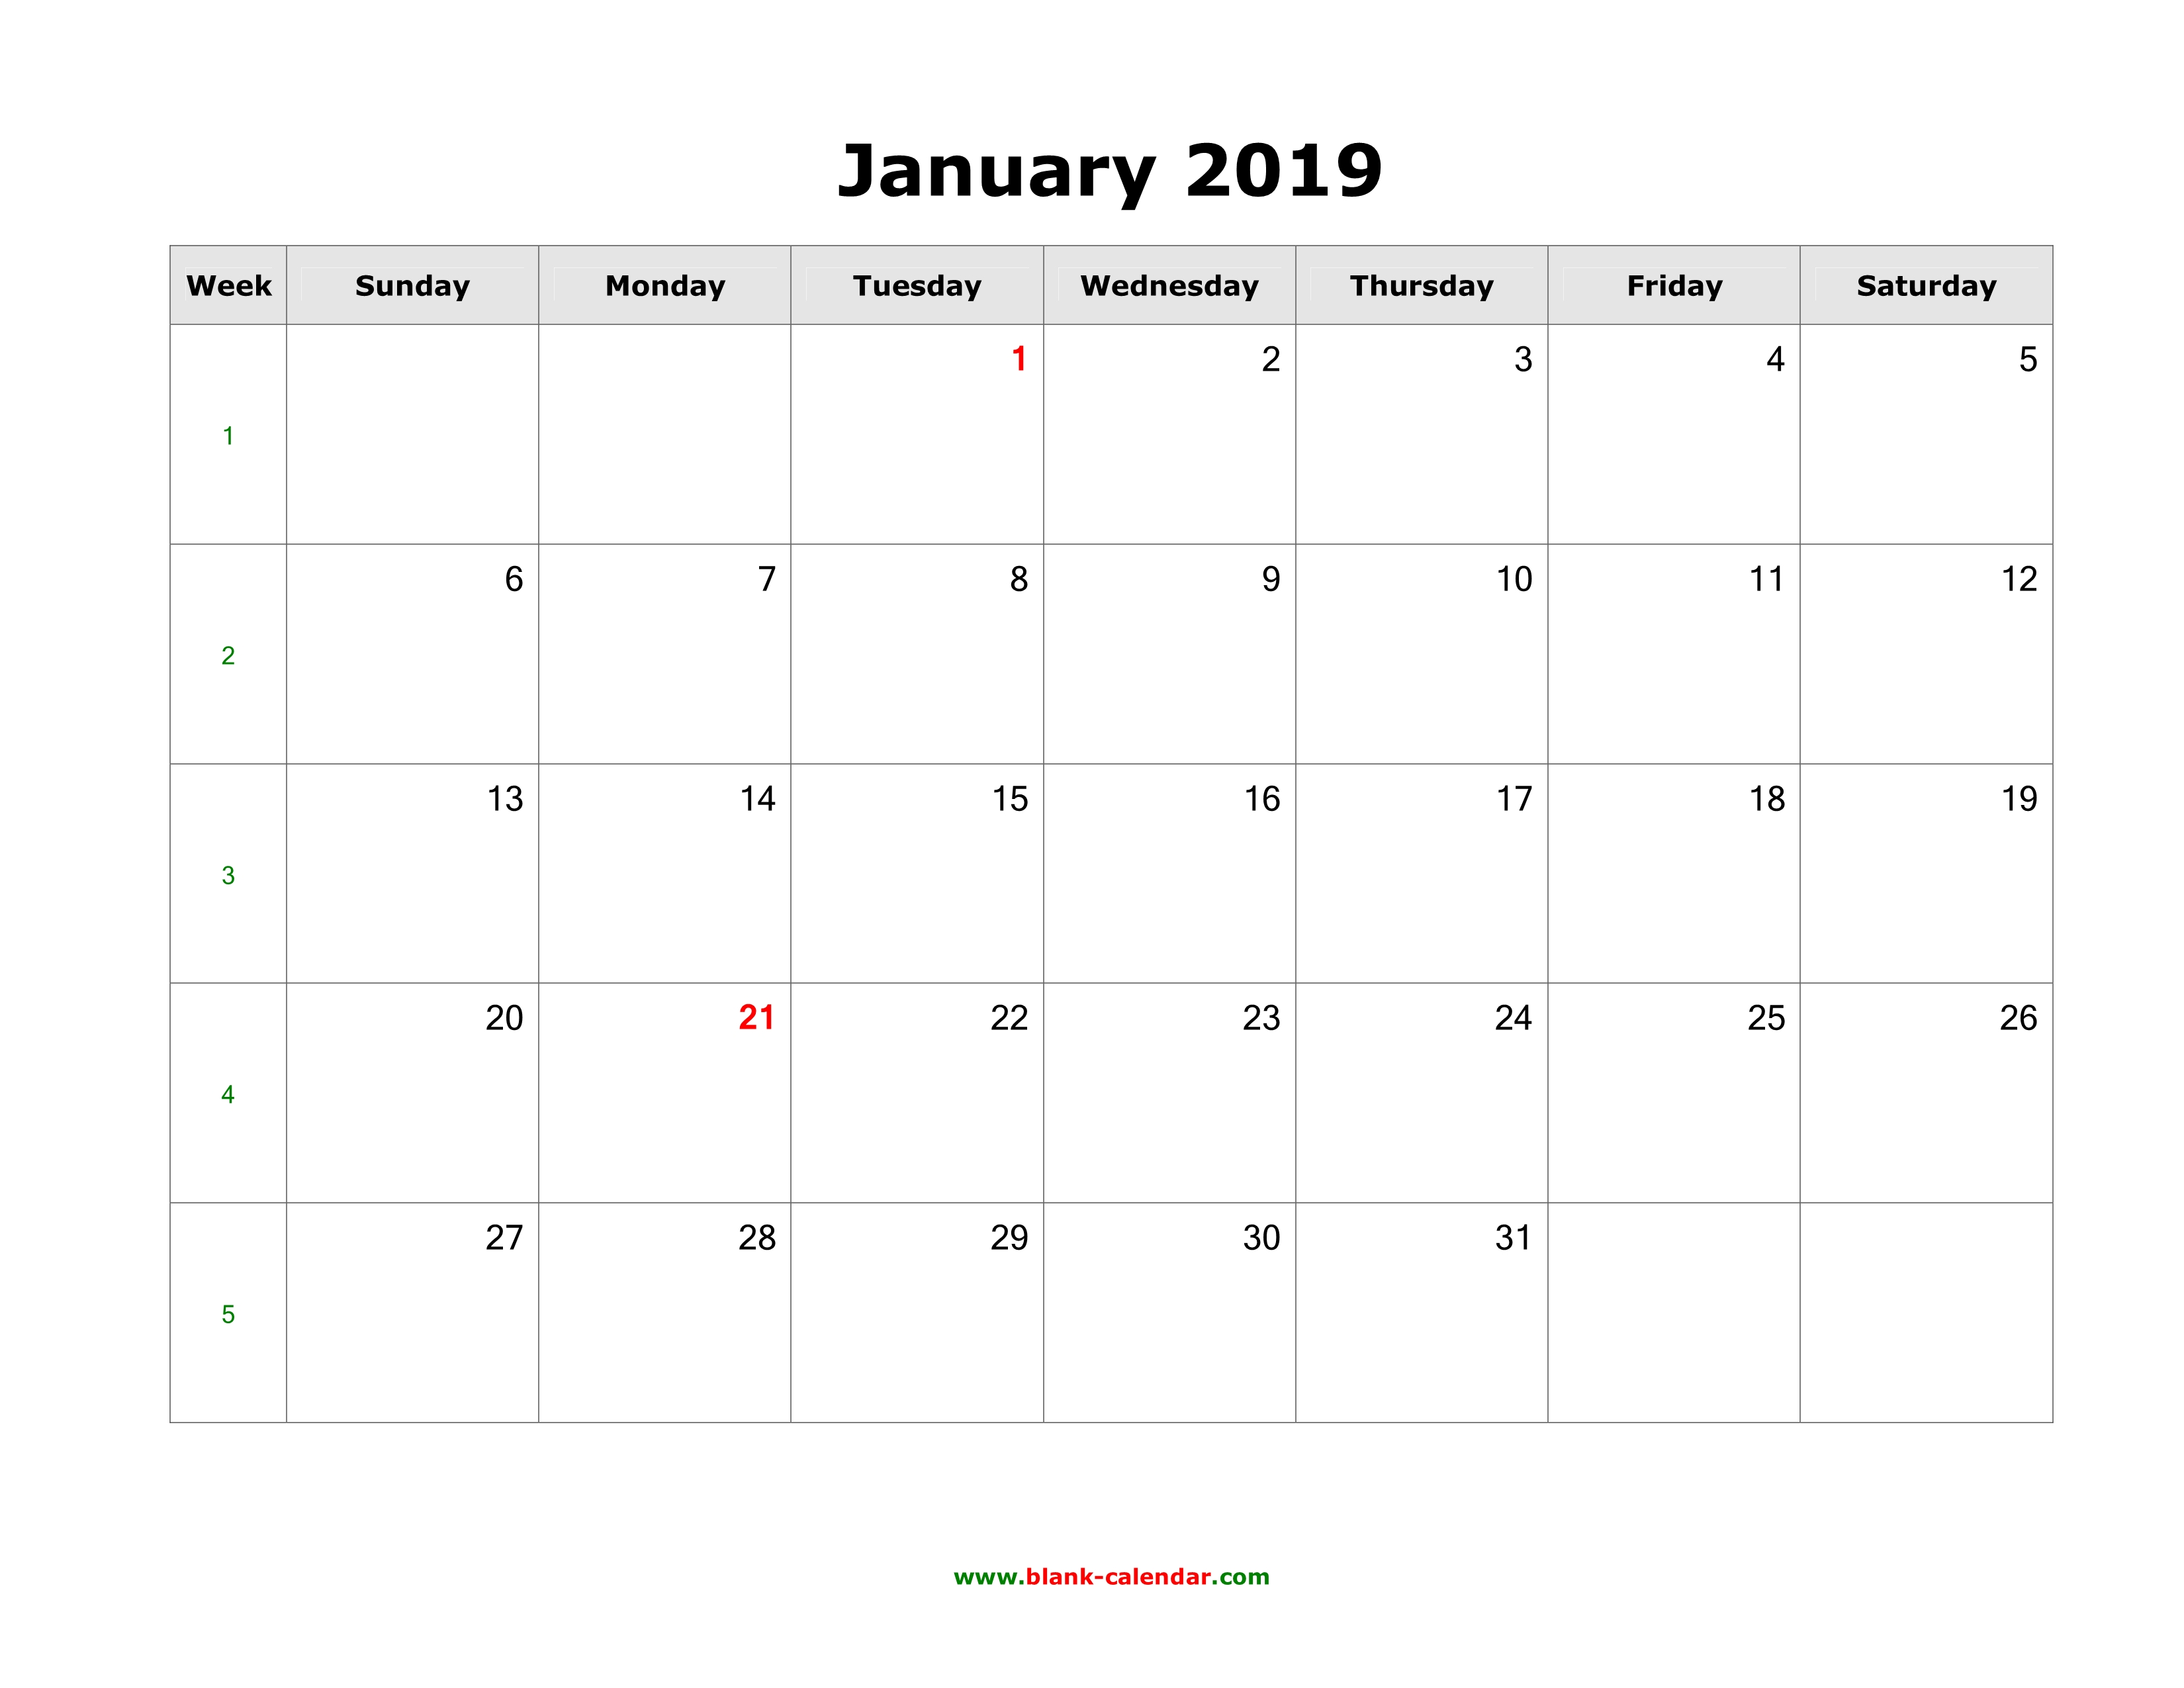 2019 Calendar Pages Download Blank Calendar 2019 (12 pages, one month per page